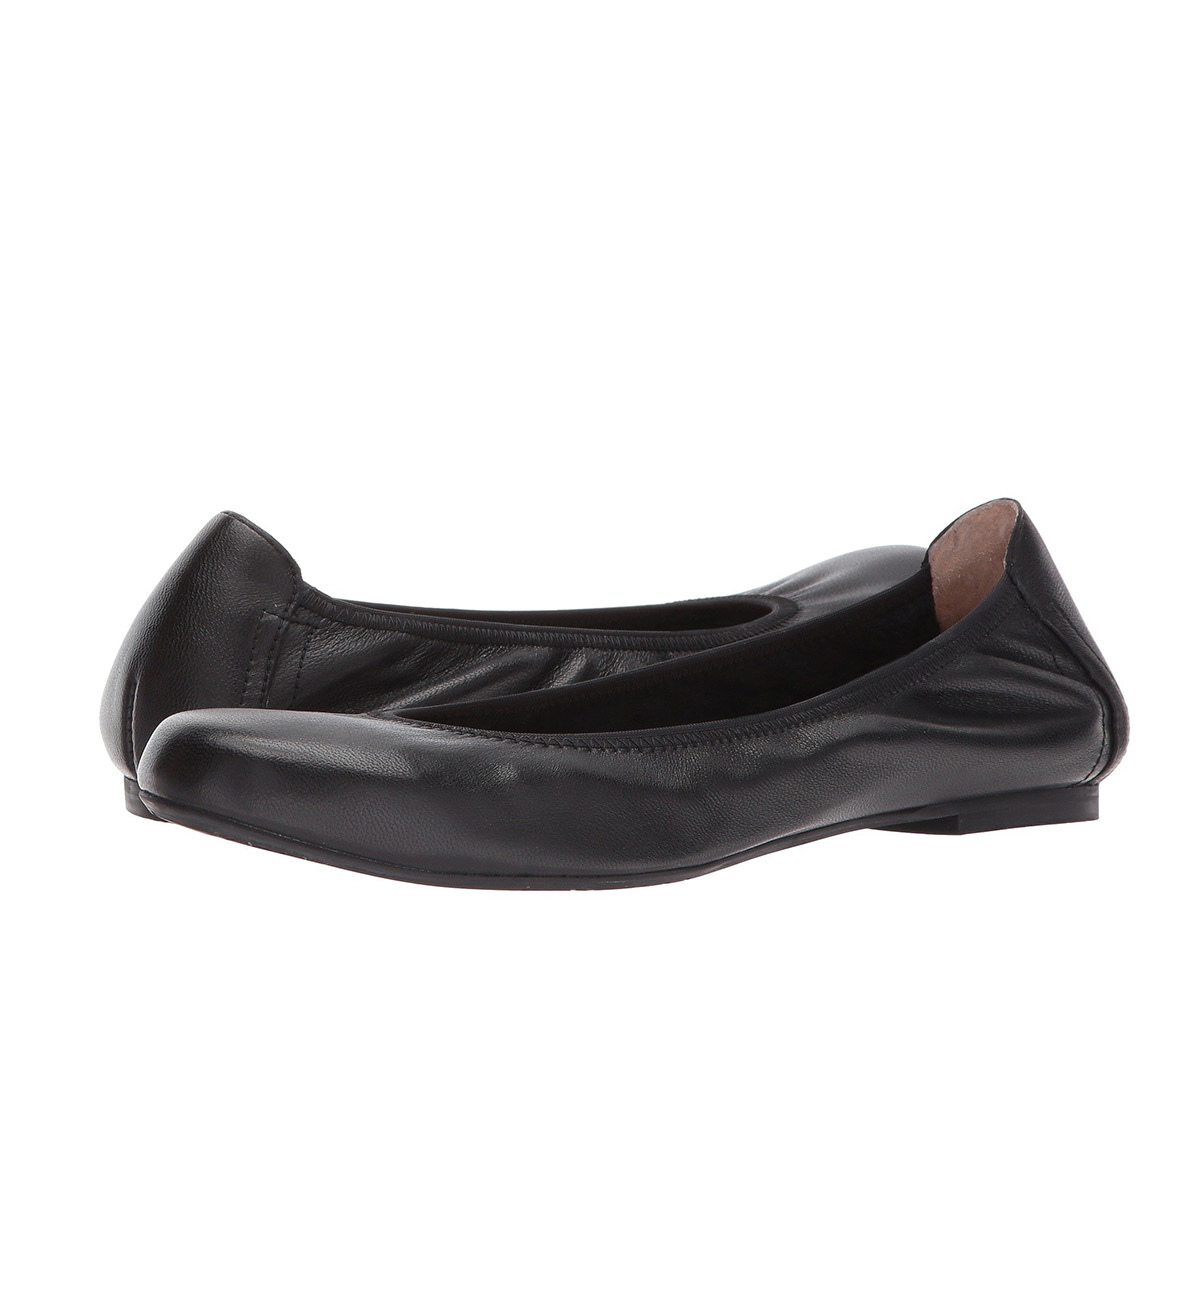 Cute Spring Shoes to Wear on Rainy Days—And They re Waterproof 045cbfa08